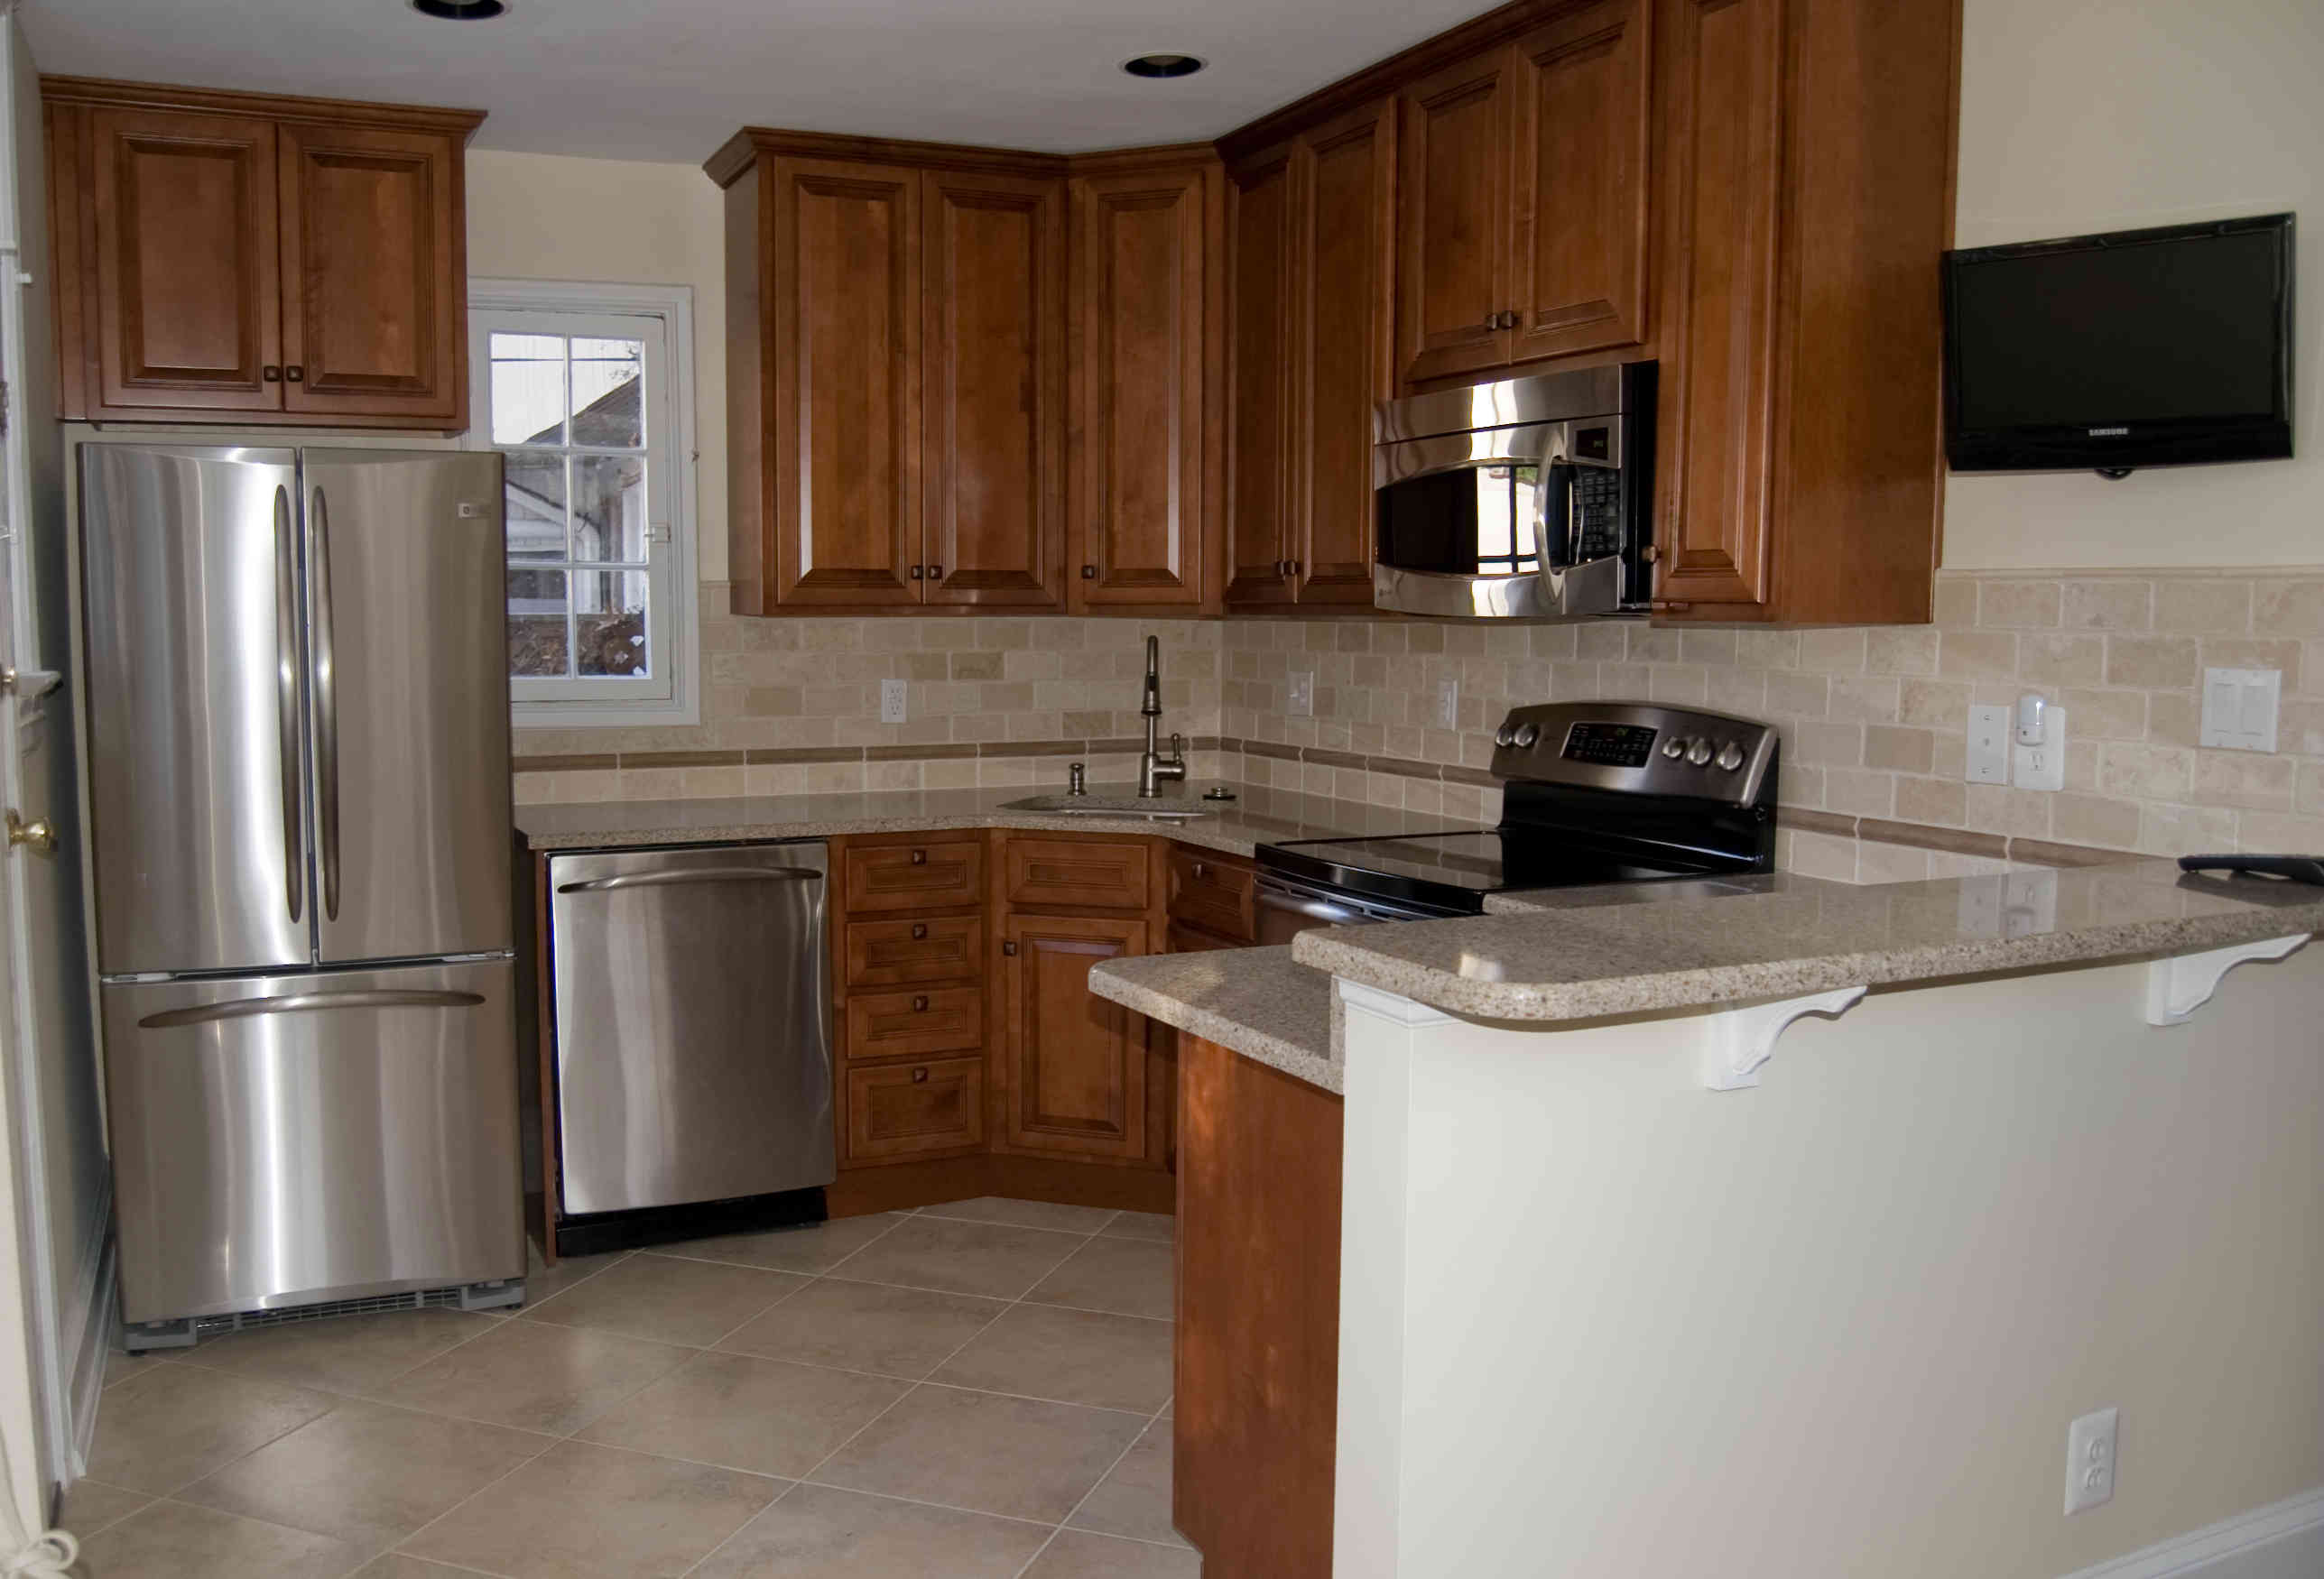 High Quality Kitchen Remodeling Washington DC Kitchen Remodeling Washington DC Kitchen  Remodeling Washington DC ...